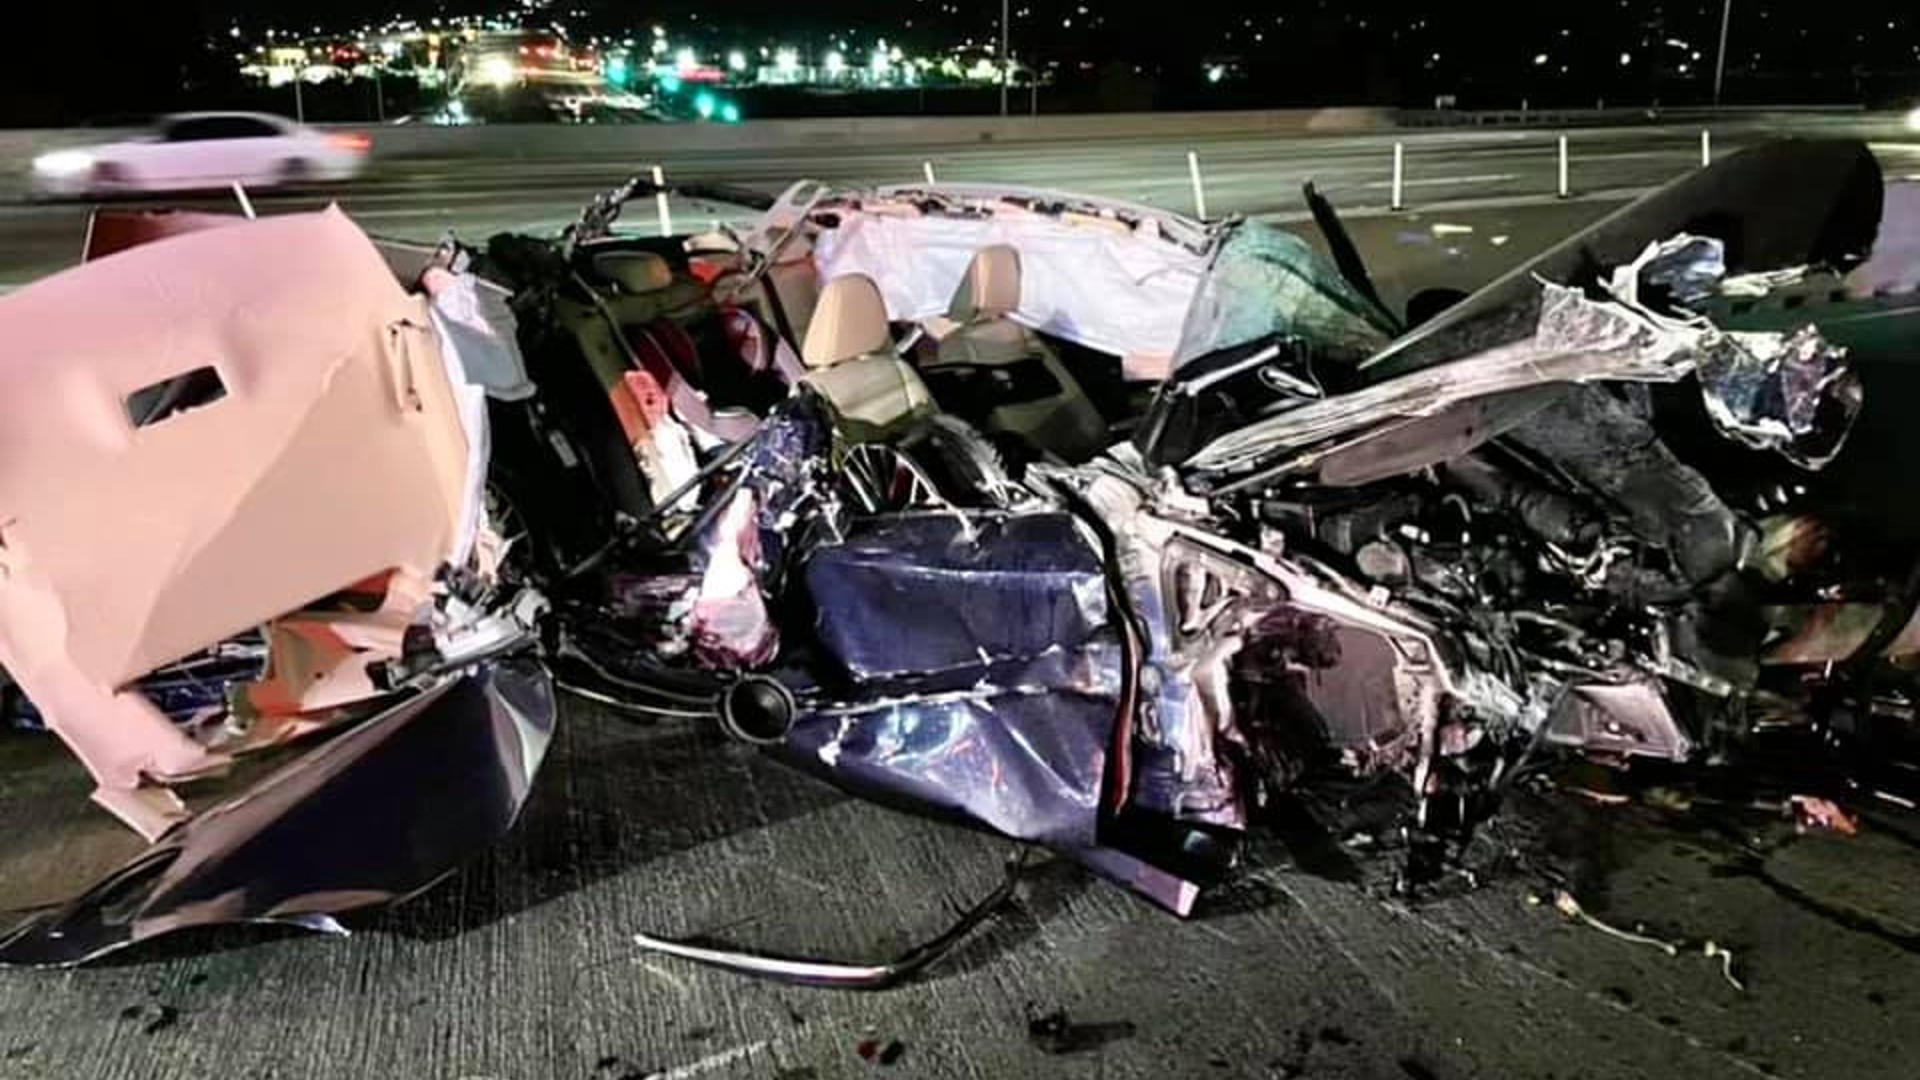 A photo of the wreck was released by the California Highway Patrol.